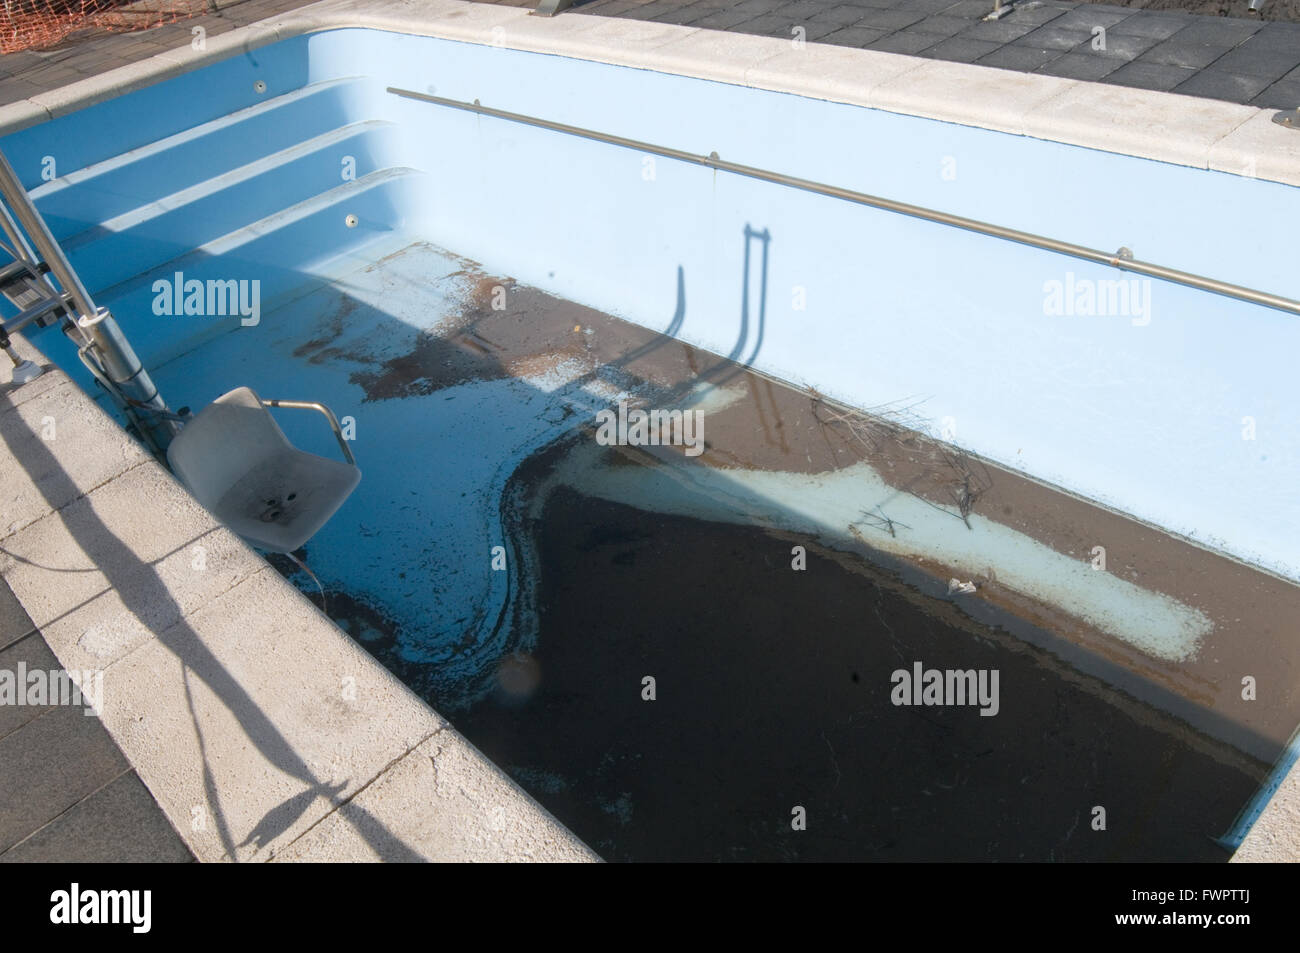 how to make a swimming pool clear